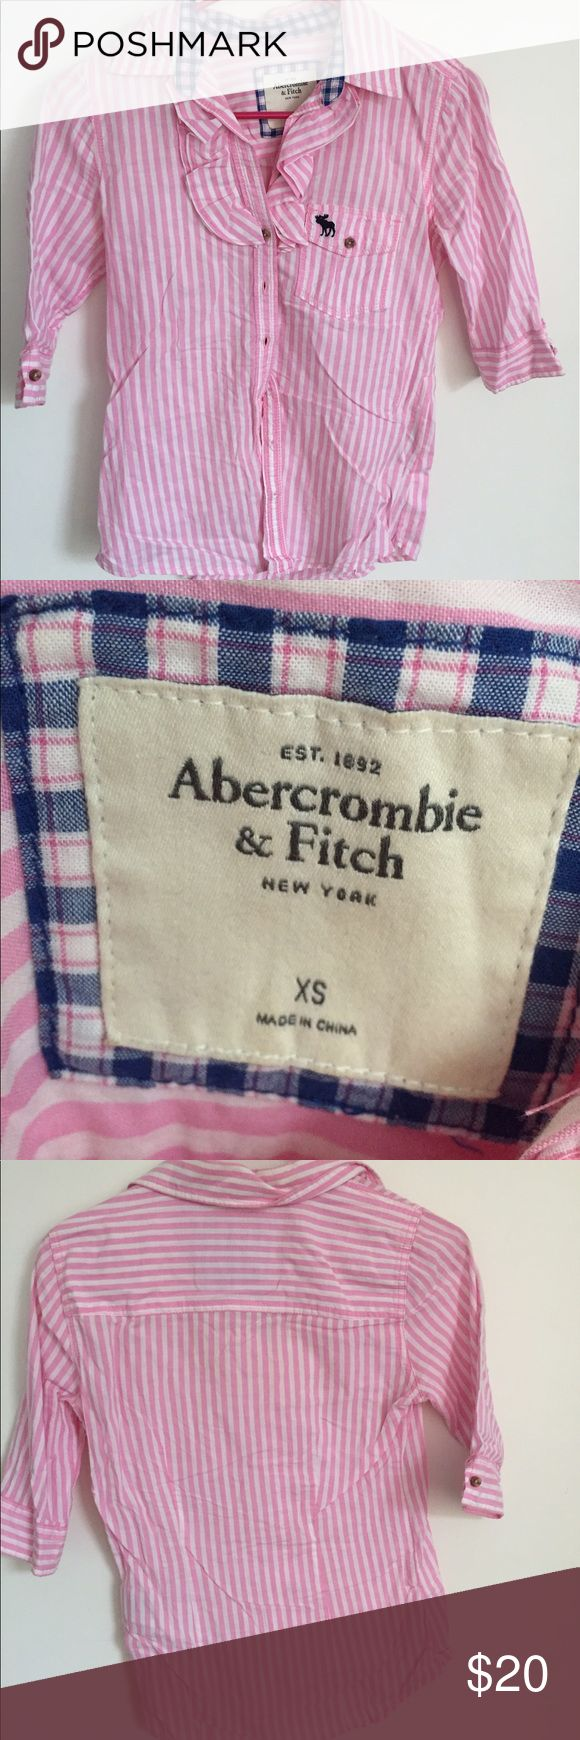 Abercrombie Dress Shirt Great condition, no defects! Super cute! Abercrombie & Fitch Tops Button Down Shirts